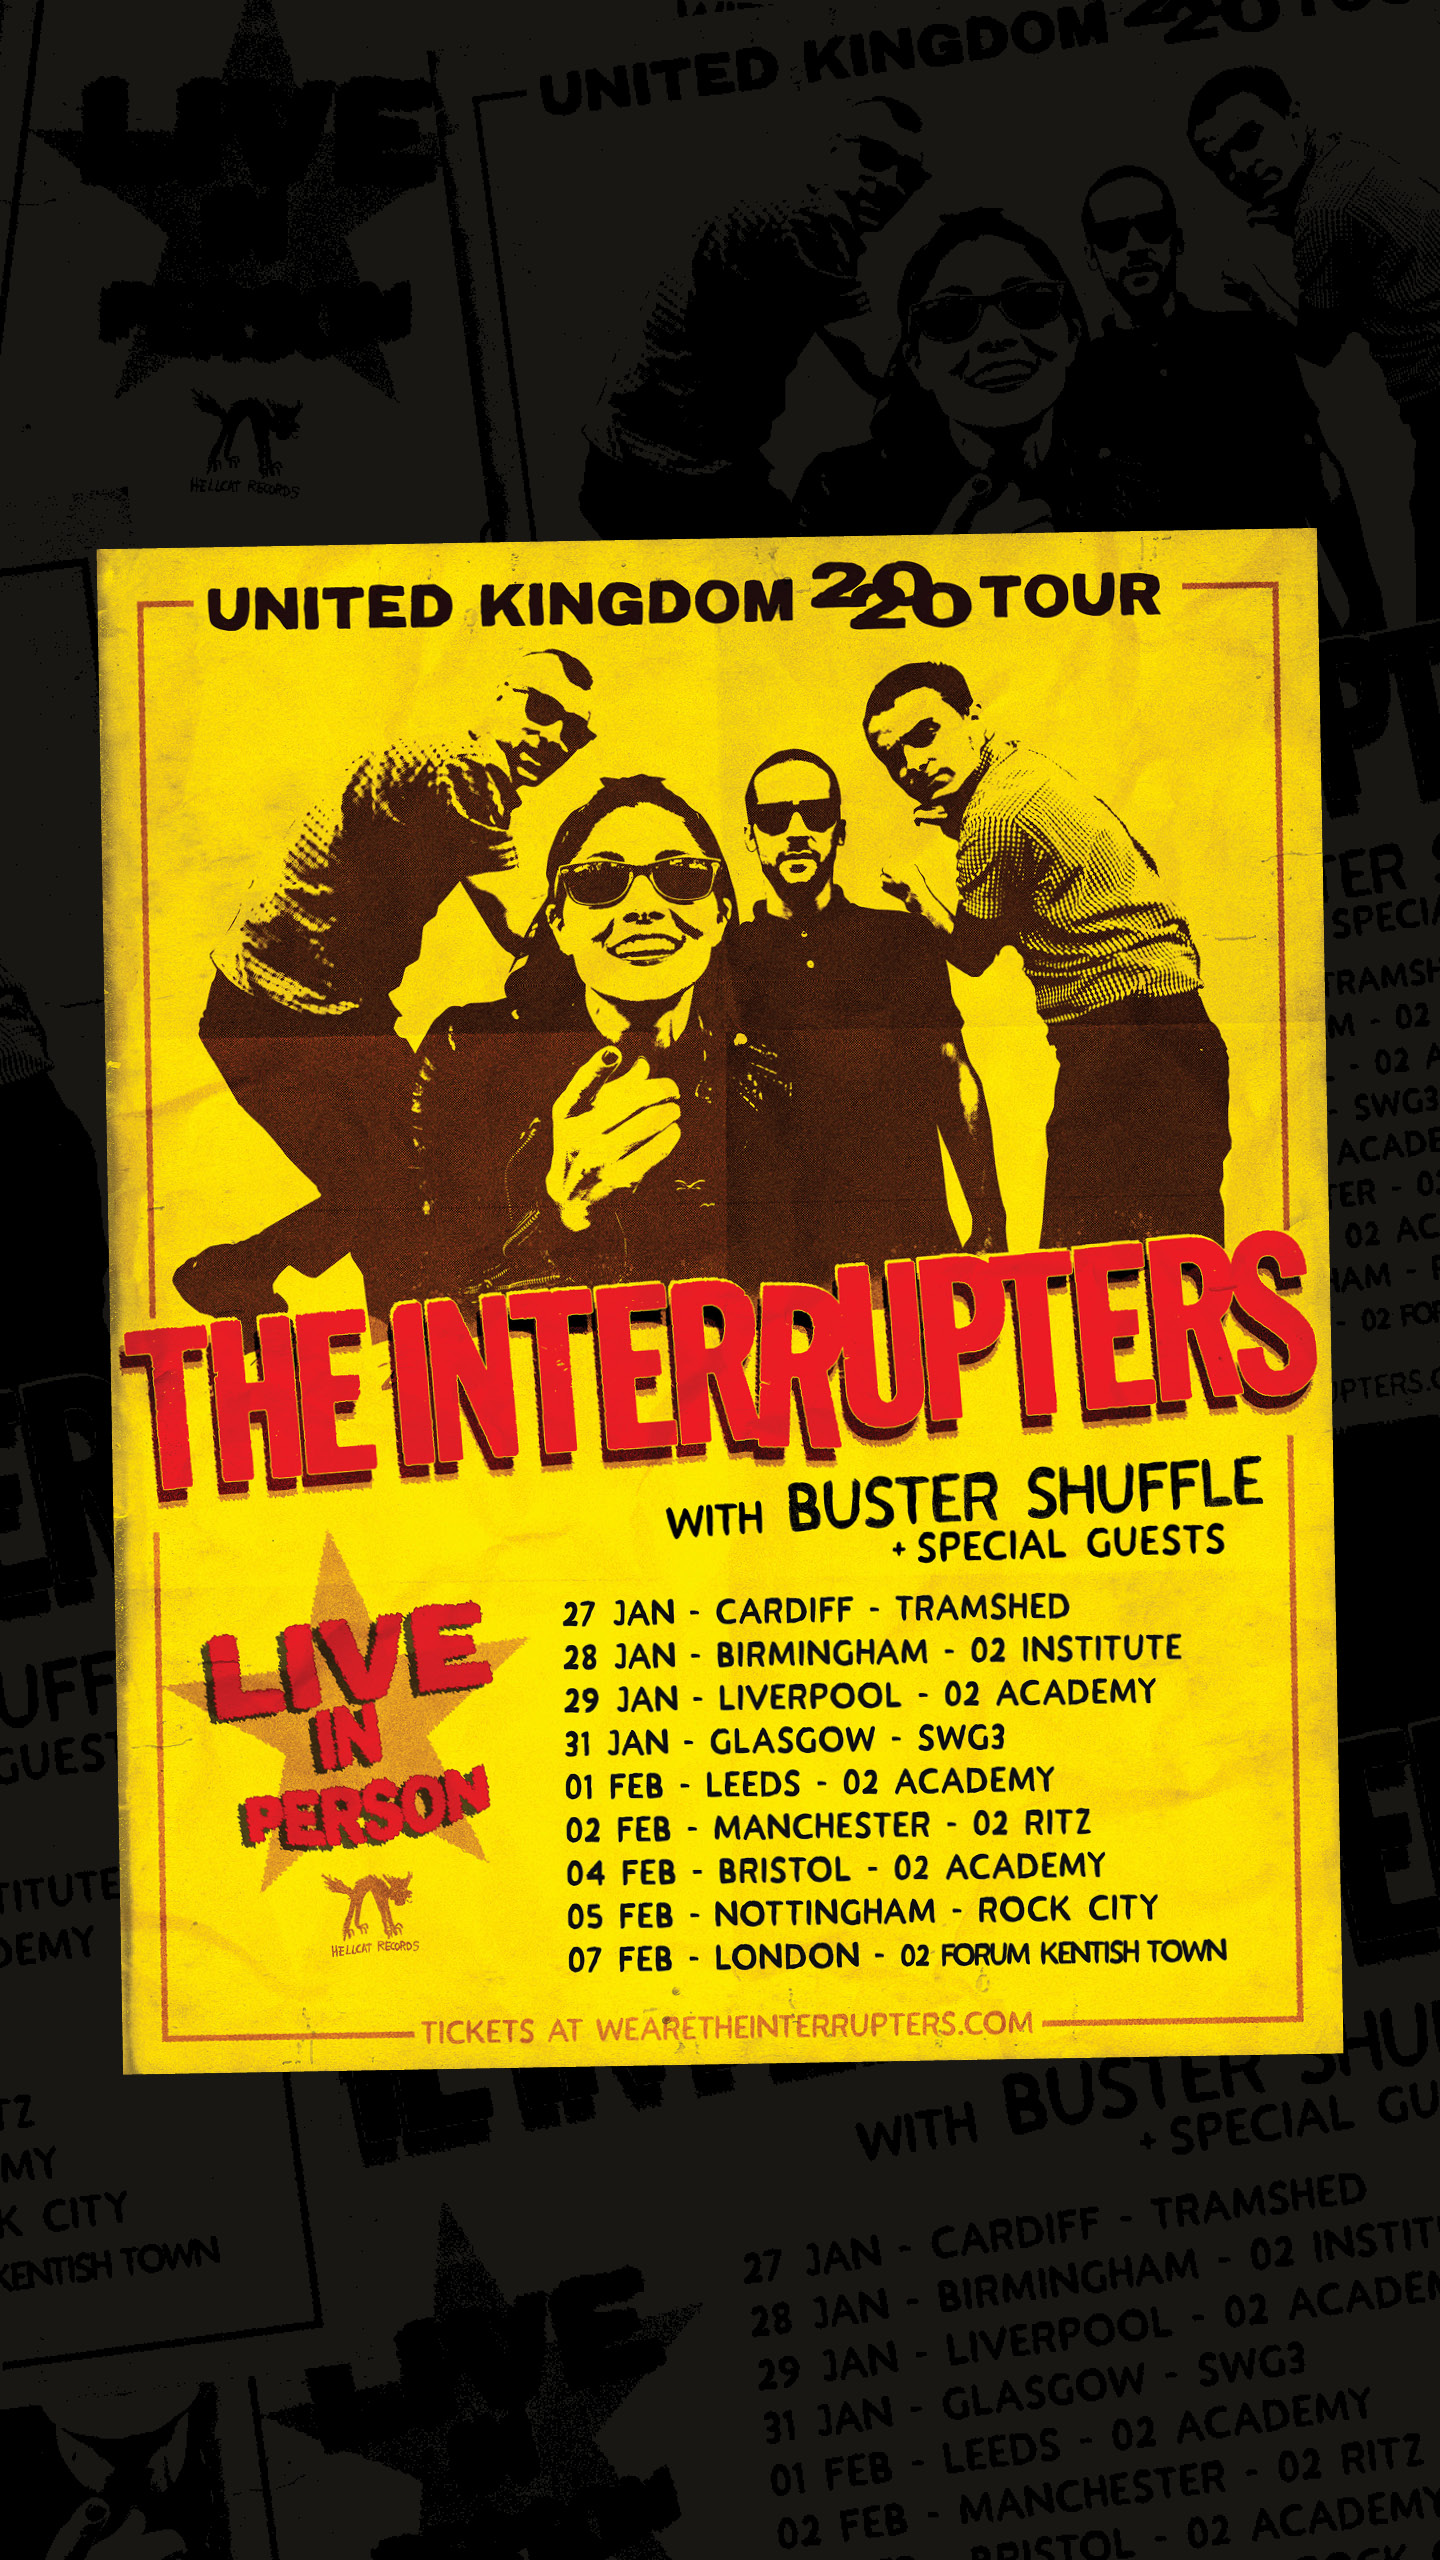 Oi Monday! We've got amazing news!  We'll be hitting the road in Jan-Feb 2020 supporting the hottest band in town right now, our pals    @interrupstagram    for a mega UK tour ♥️ 🇬🇧 🤘🏻 Shows will sell out super fast so you know what to do 🤟👍✊✌🏼 Tickets on sale this Friday @ wearetheinterrupters.com 27.01. Cardiff Tramshed 28.01. Birmingham O2 Institute 29.01. Liverpool O2 Academy 31.01. Glasgow SWG3 01.02. Leeds O2 Academy 02.02. Manchester O2 Ritz  04.02. Bristol O2 Academy 05.02. Nottingham Rock City 07.02. London. O2 Forum Kentish Town